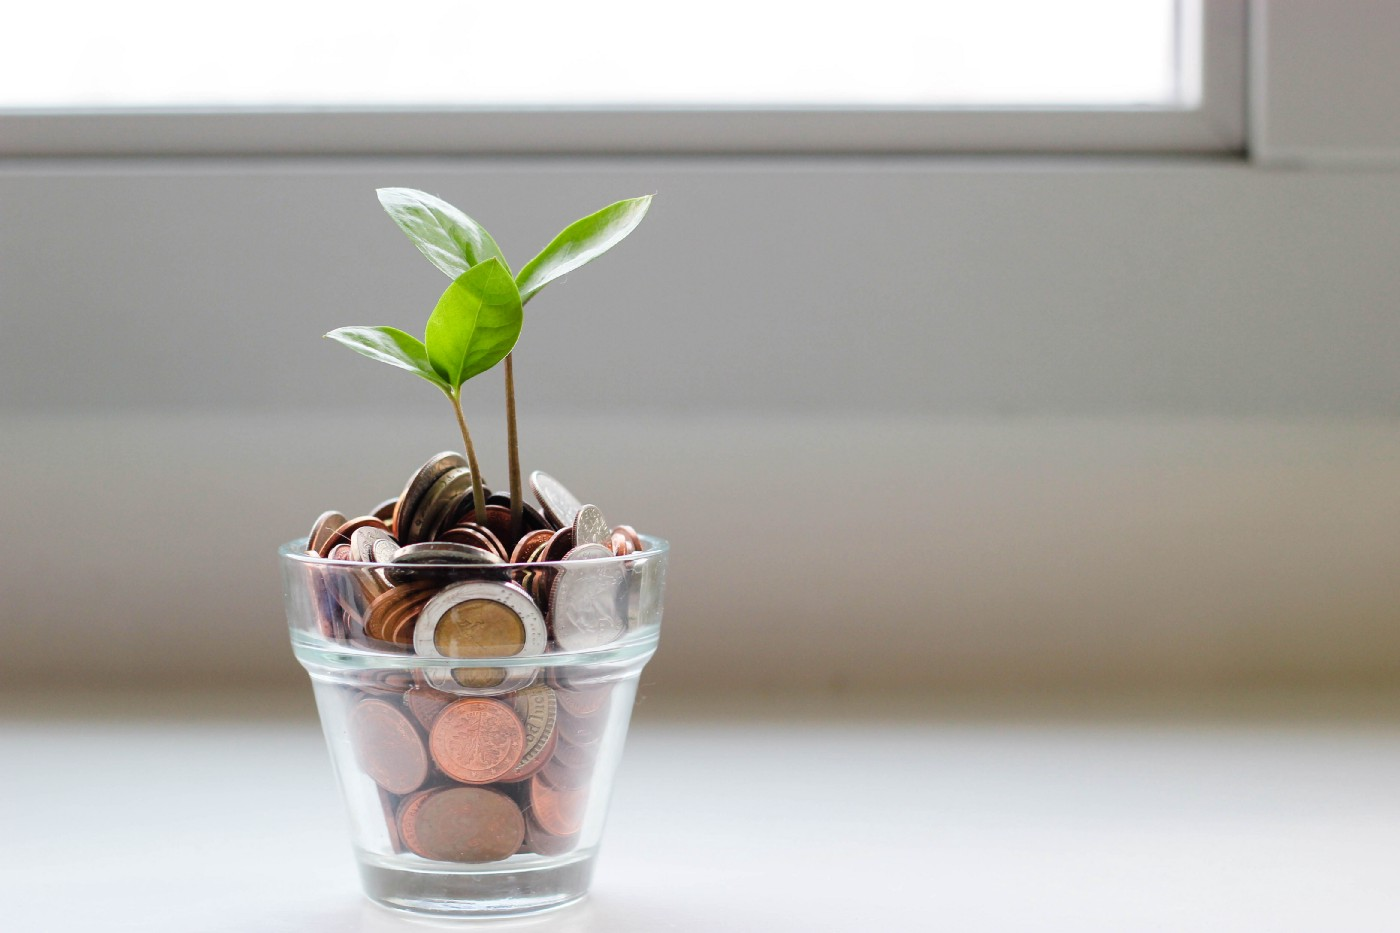 Photo of a planter with coins instead of soil, by Visual Stories || Micheile on Unsplash